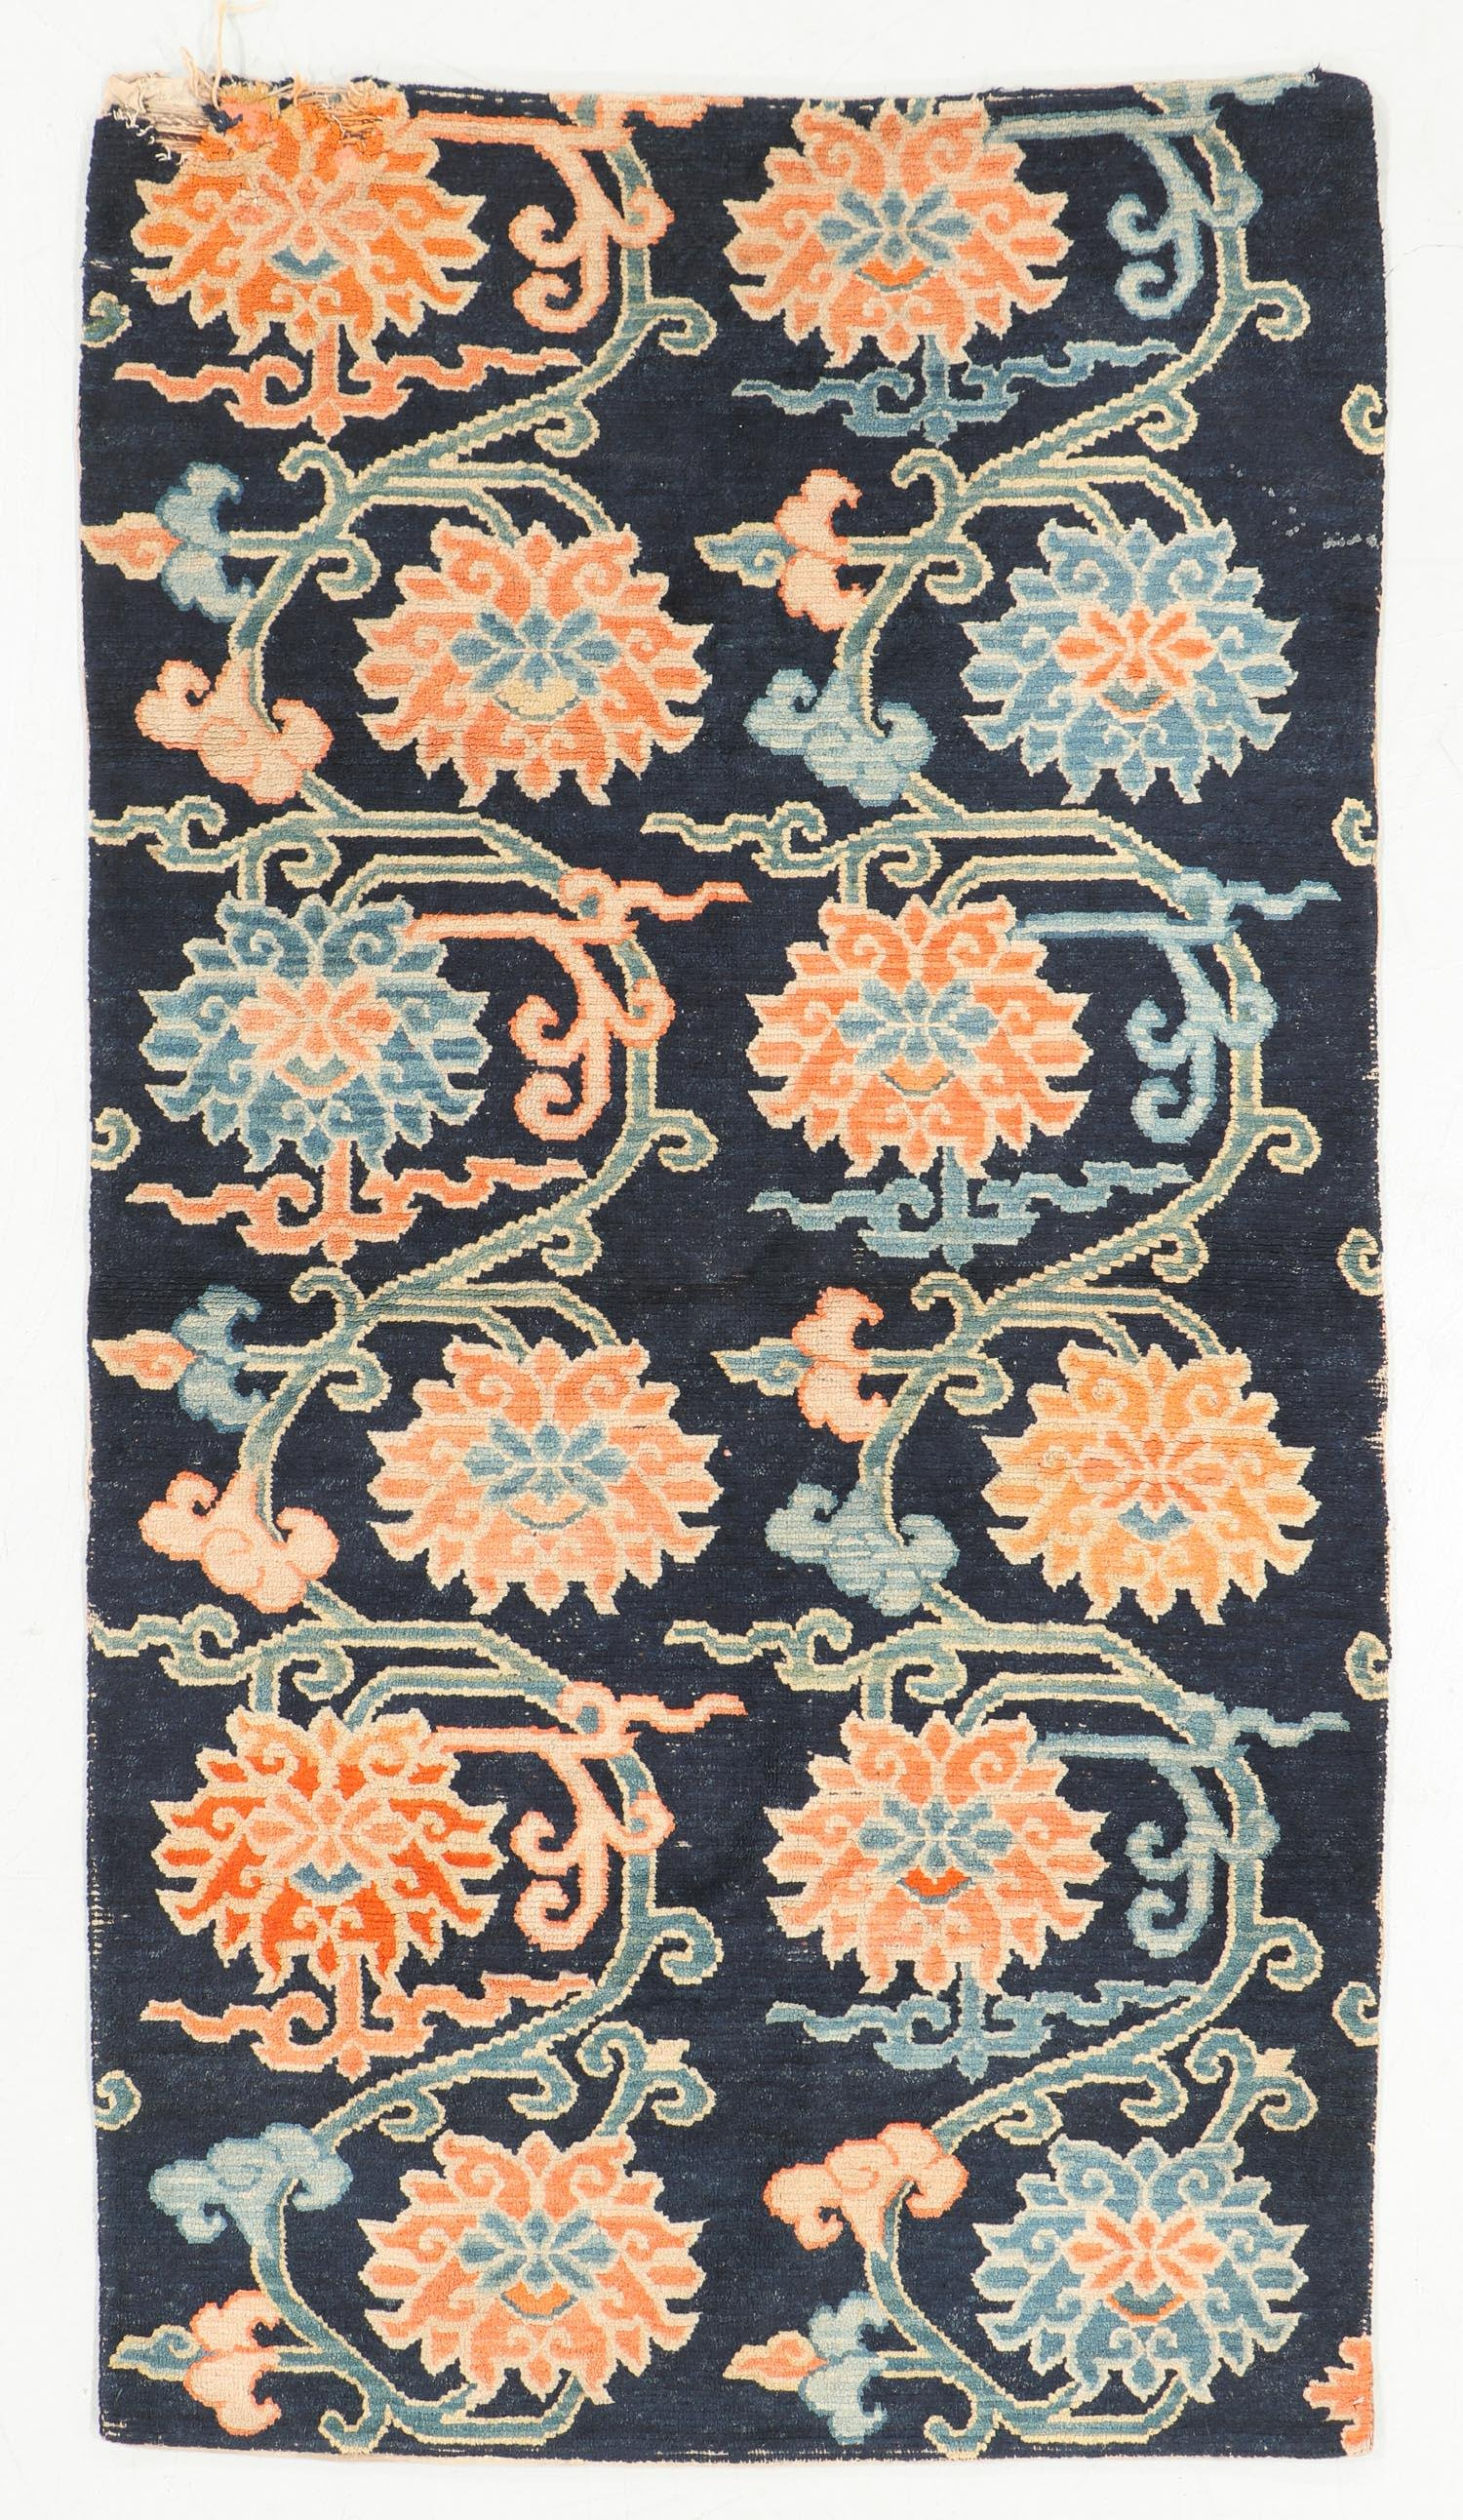 Tibetan Rug, Early 20th C.